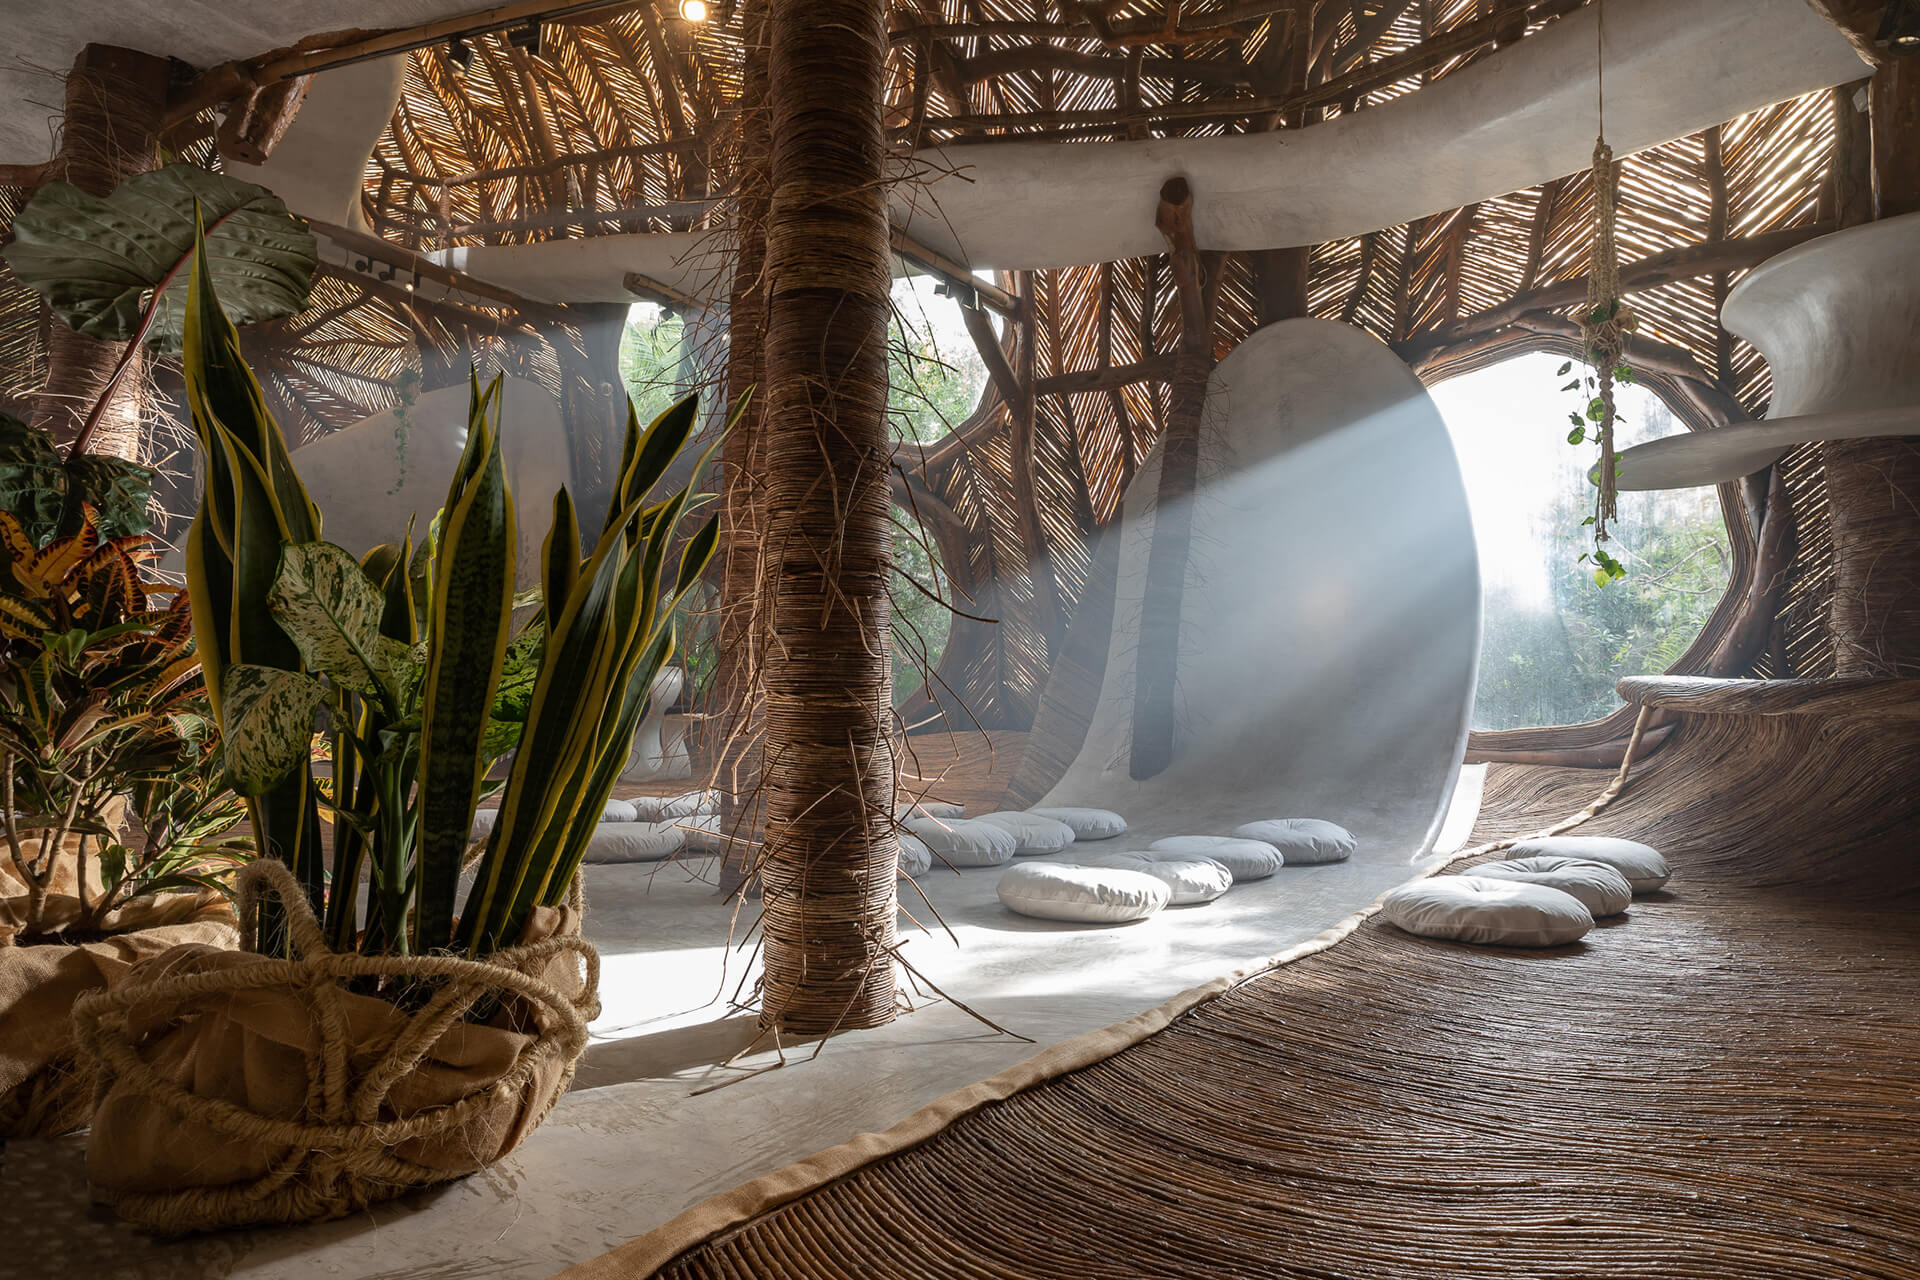 SFER_IK, Tulum, is an integrally experiential art and cultural museum that follows the natural contour of the ground | Eduardo Neira, Roth Interview | Roth Architecture | STIRworld